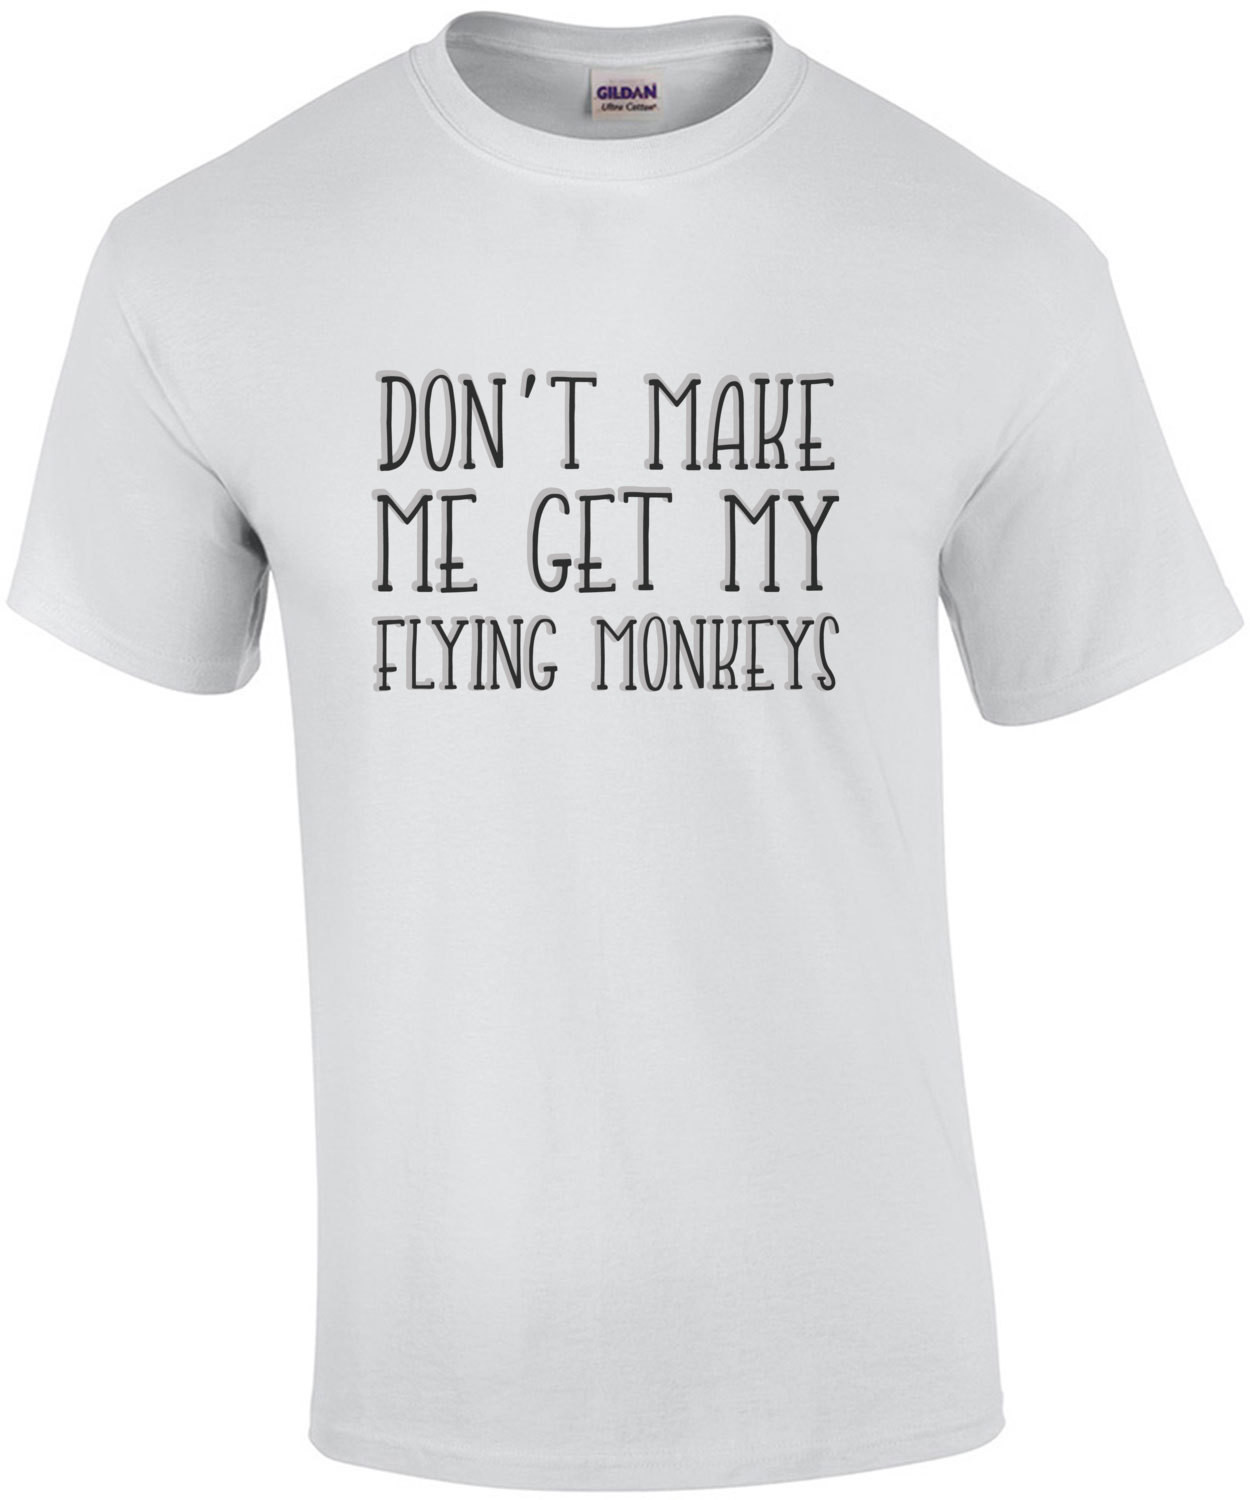 Don't make me get my flying monkeys. Witch t-shirt Wizard of ozz t-shirt